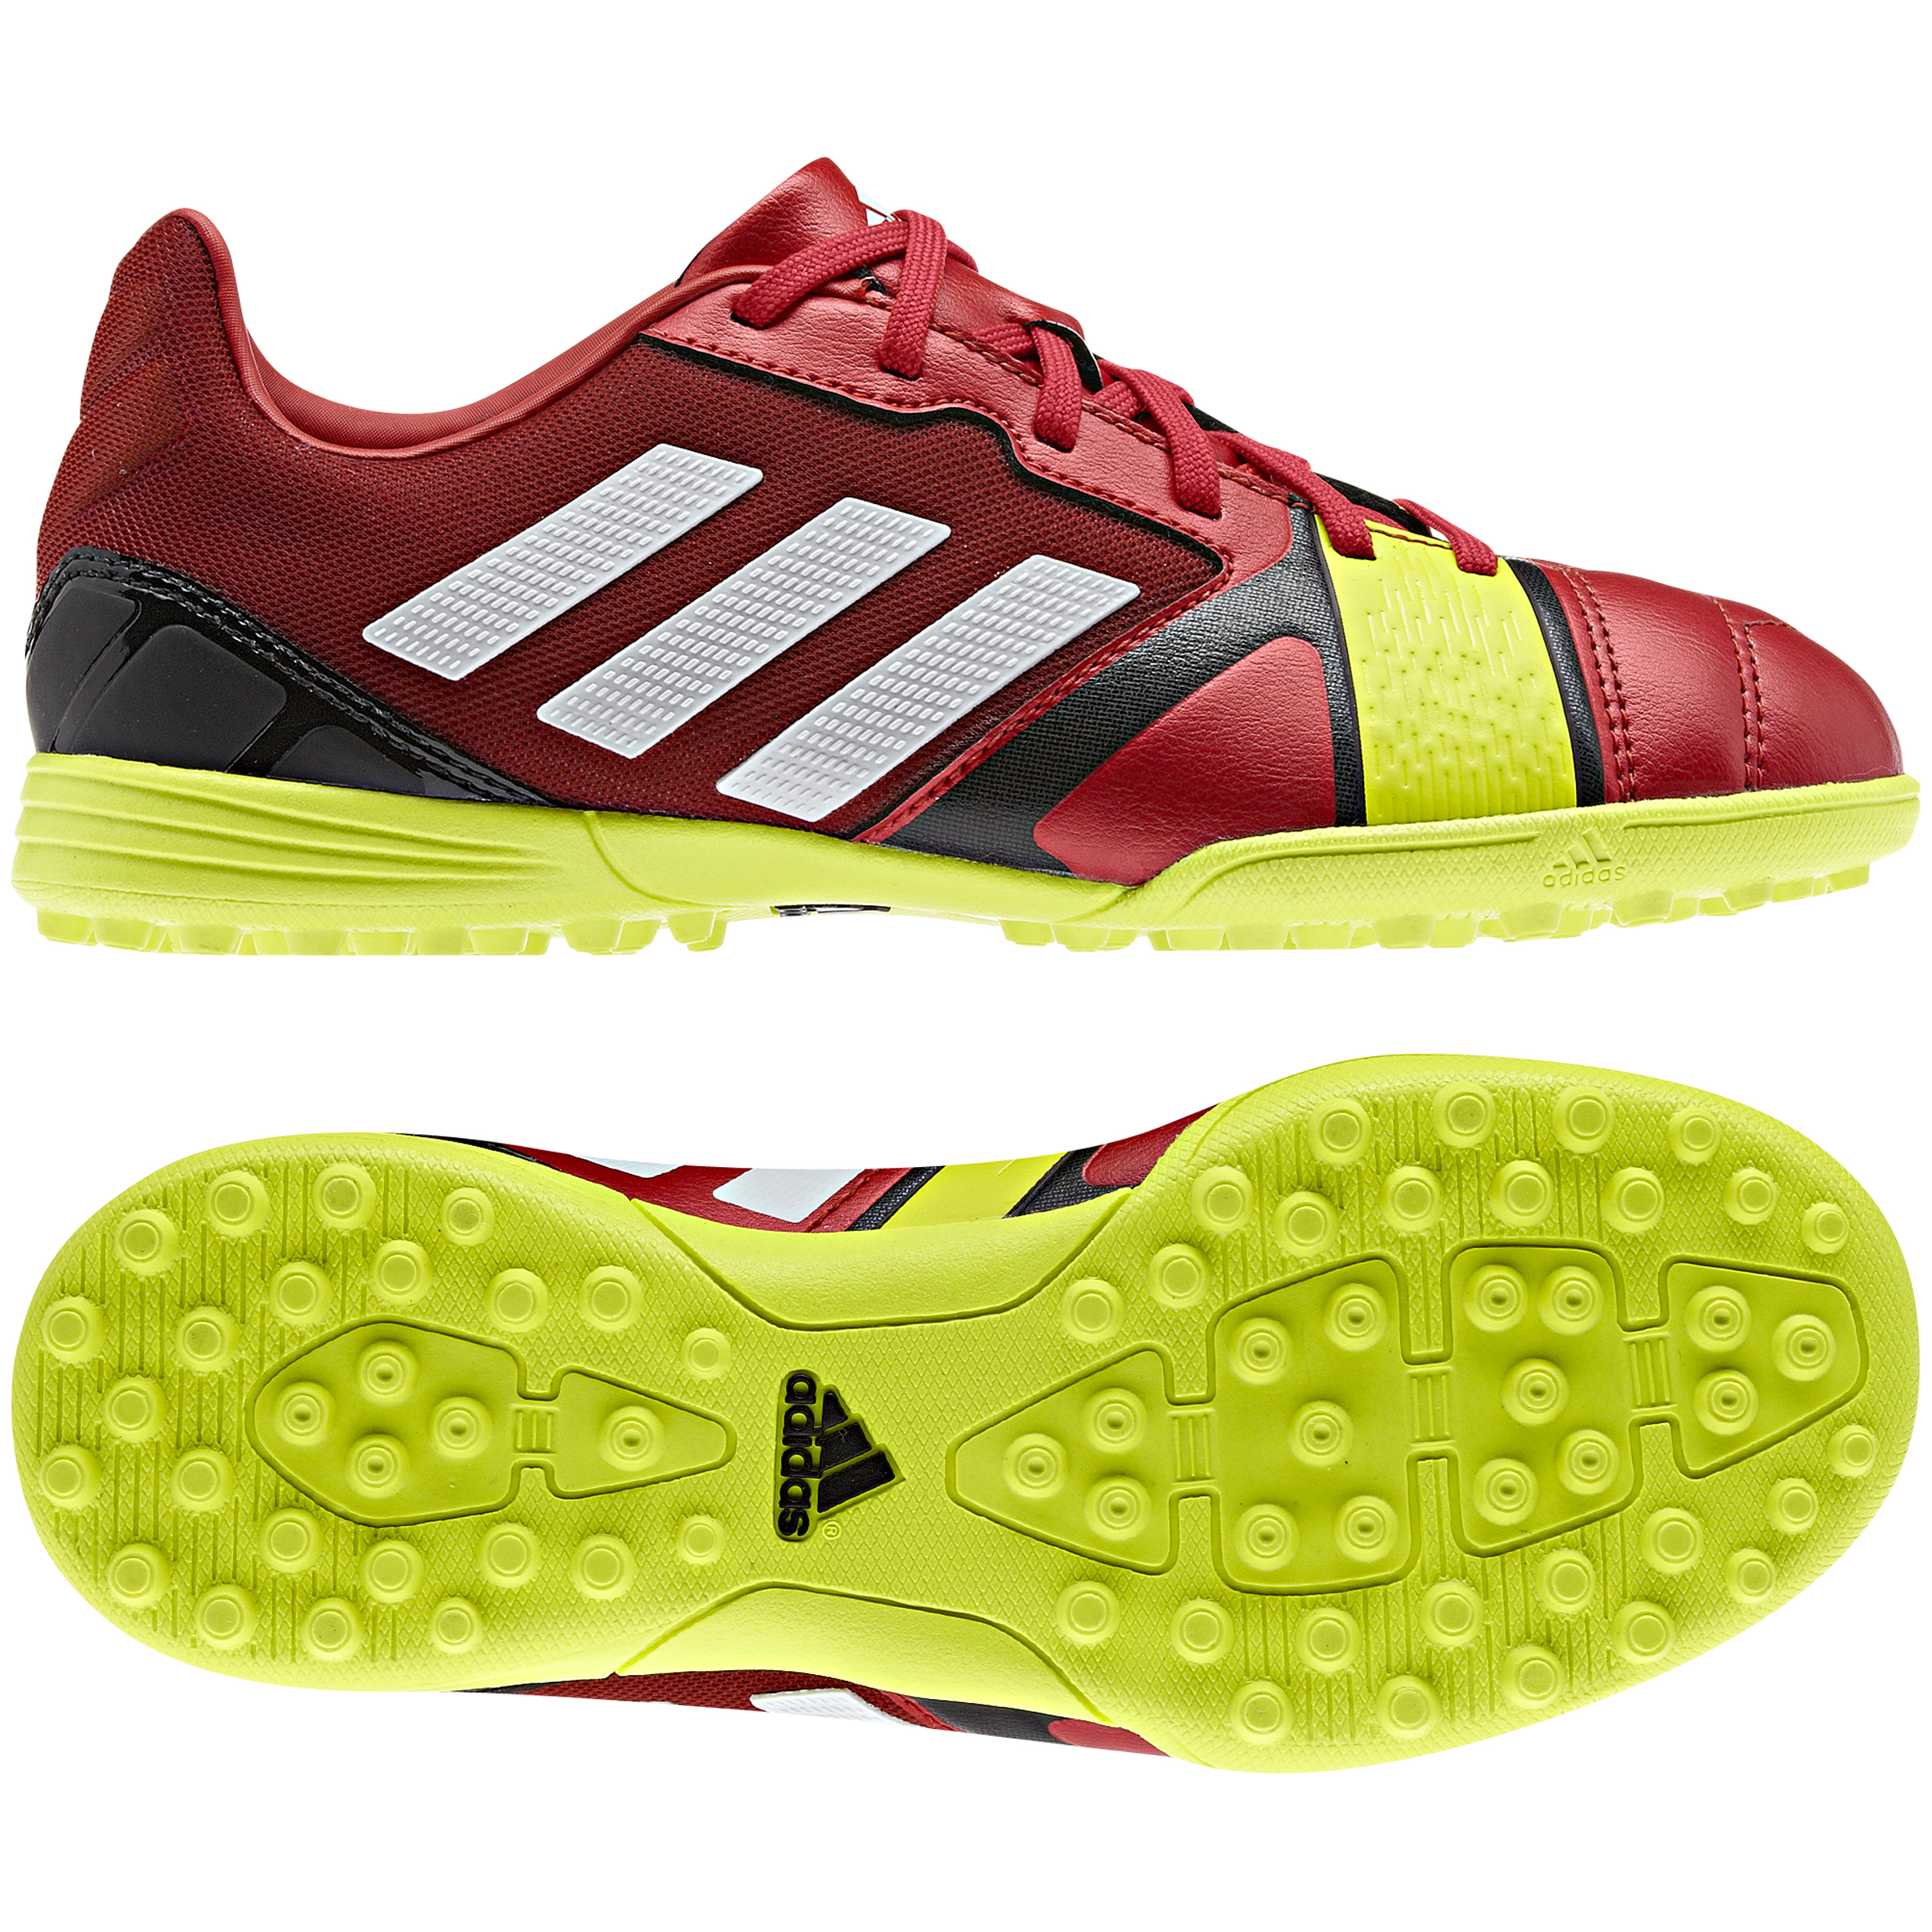 Adidas Nitrocharge 2.0 TRX Astroturf Trainers Red